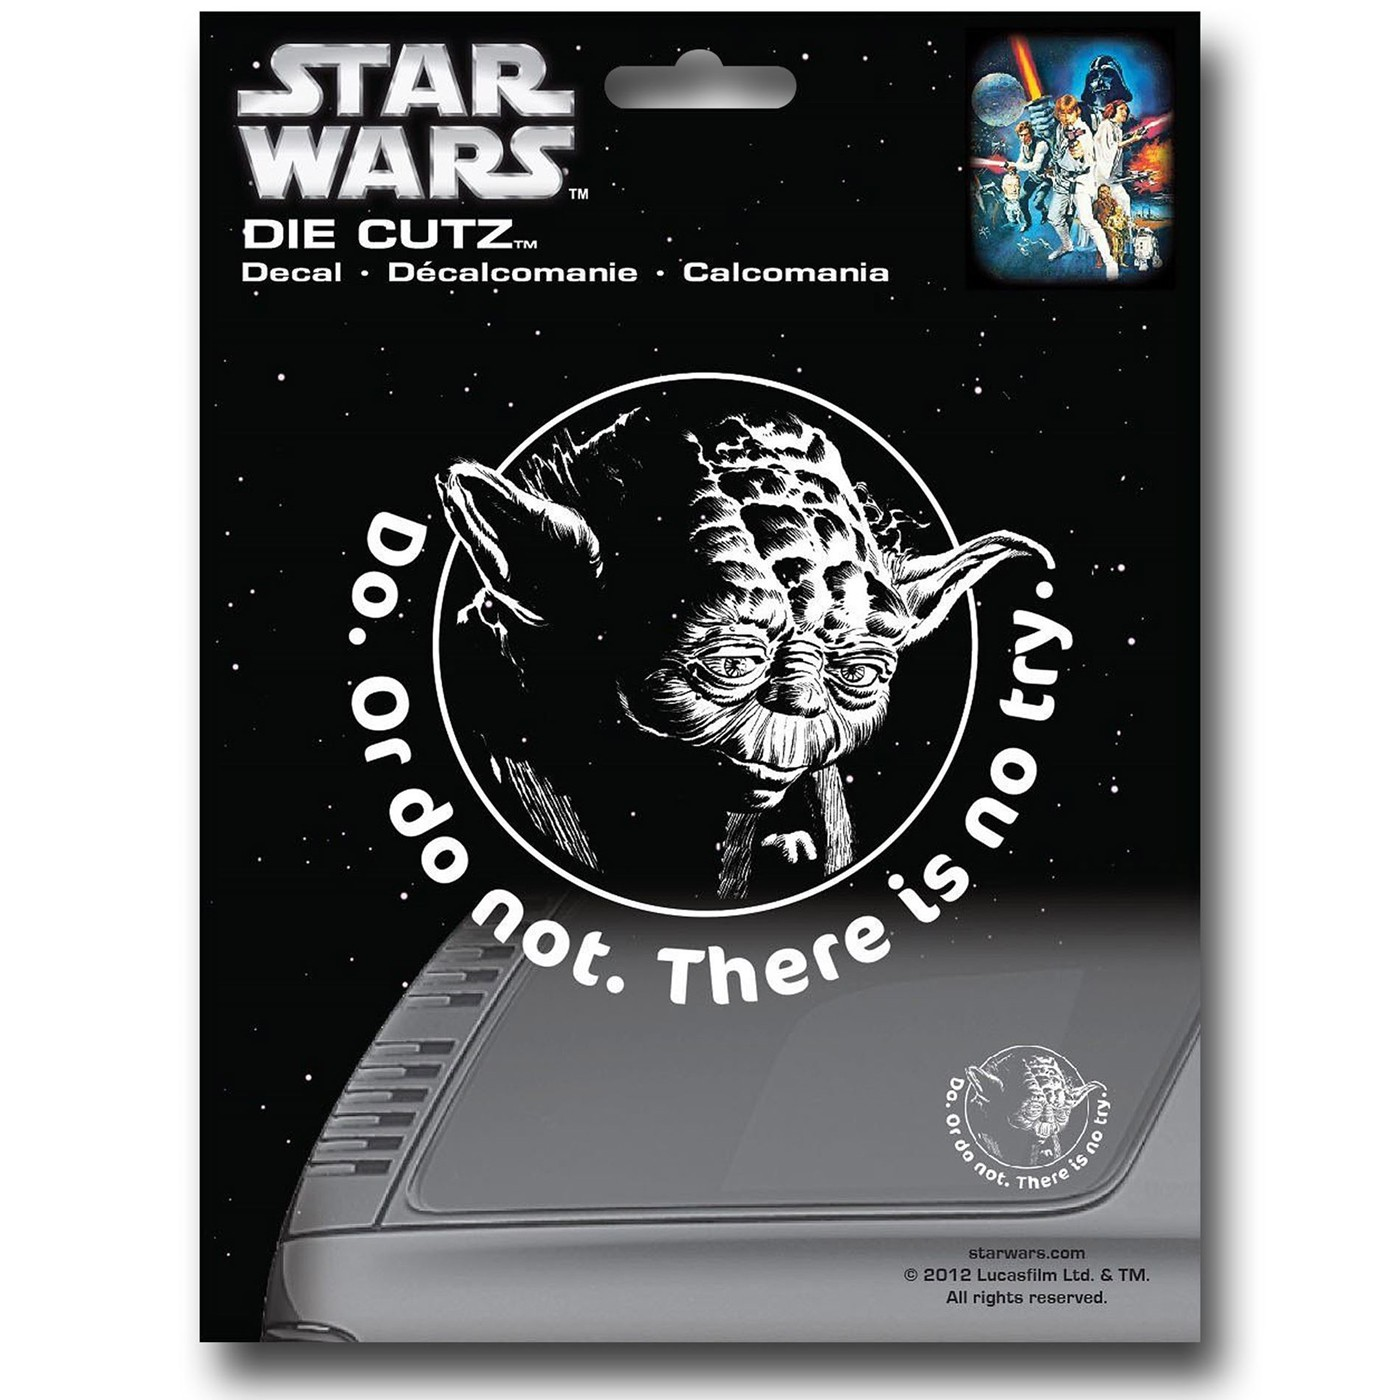 Star Wars Yoda Die Cut Decal